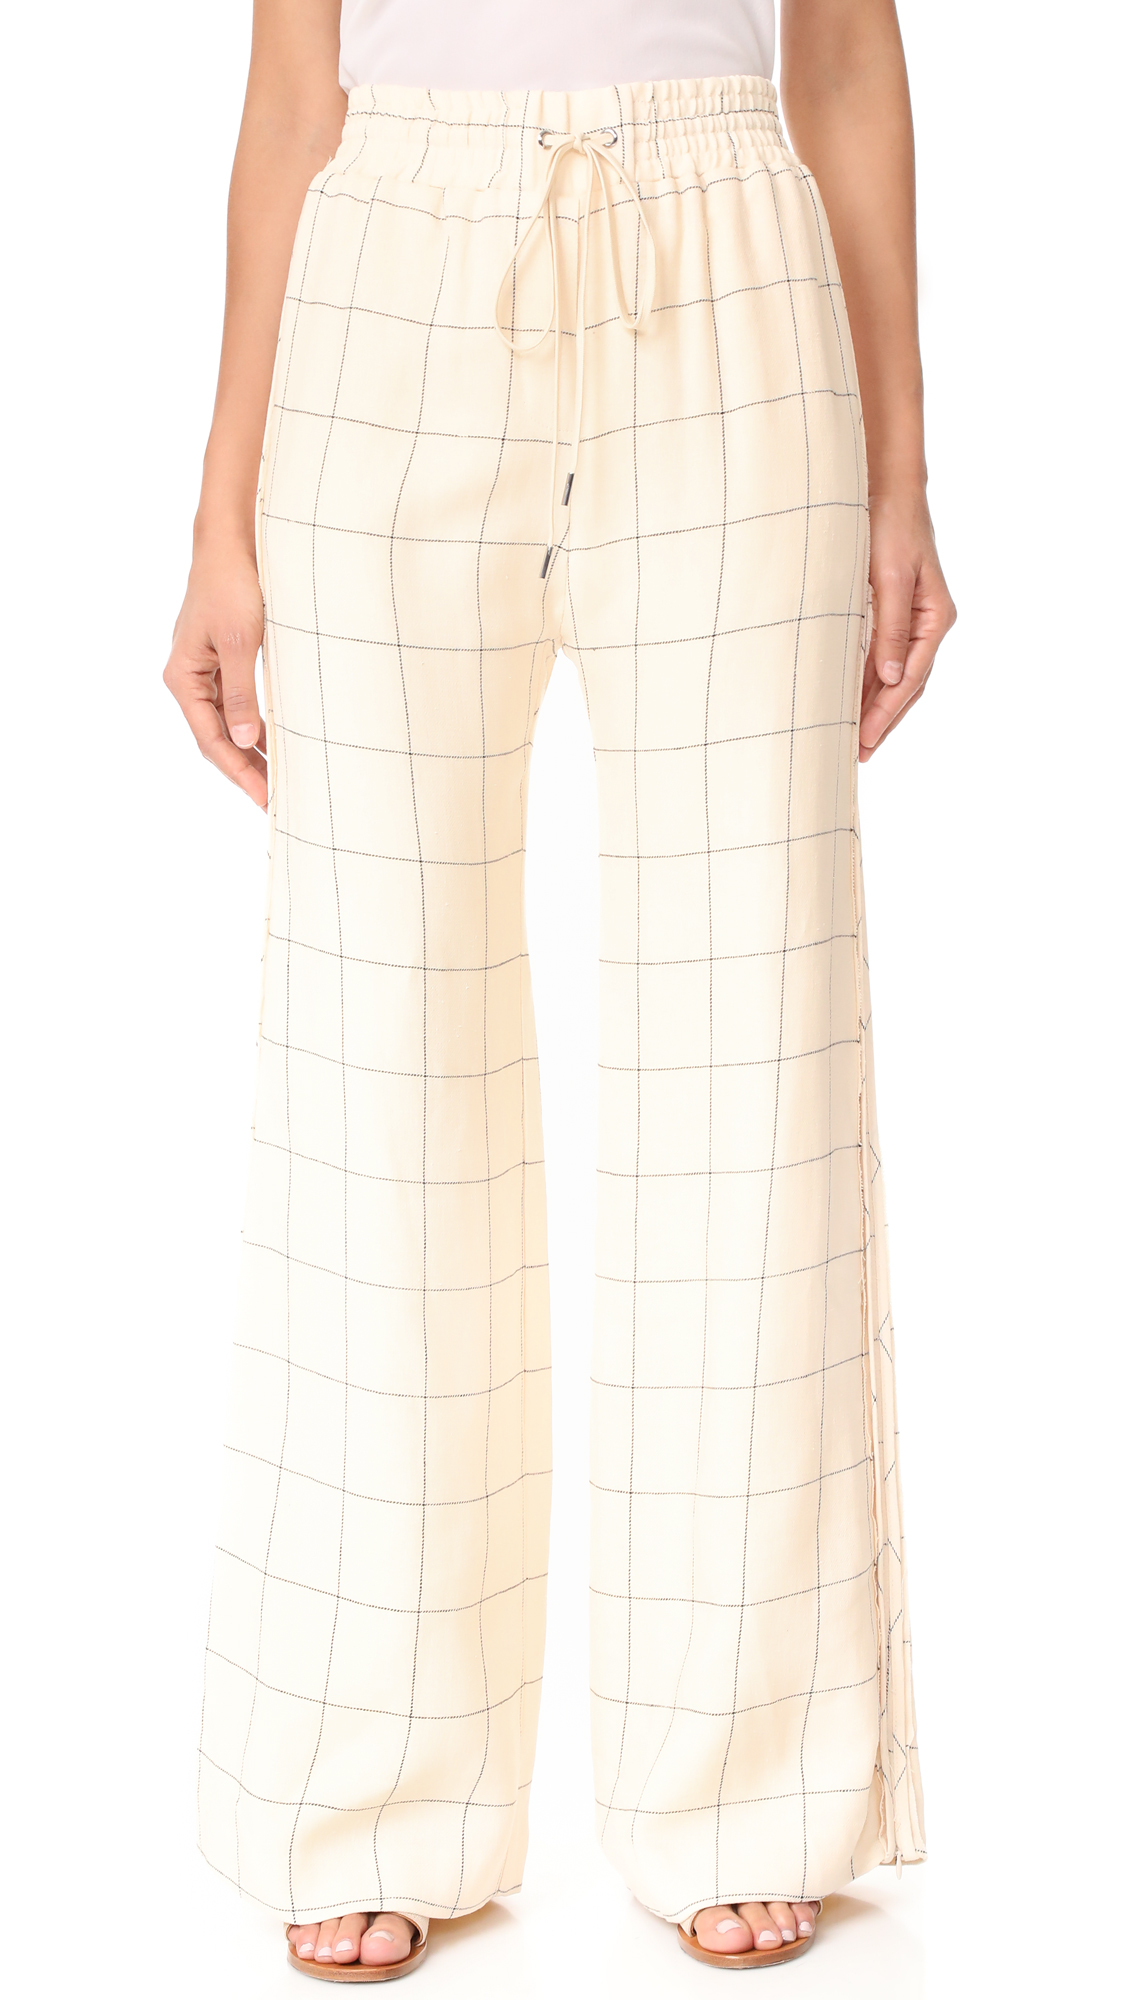 Zimmermann Stranded Threadbare Pants - Check